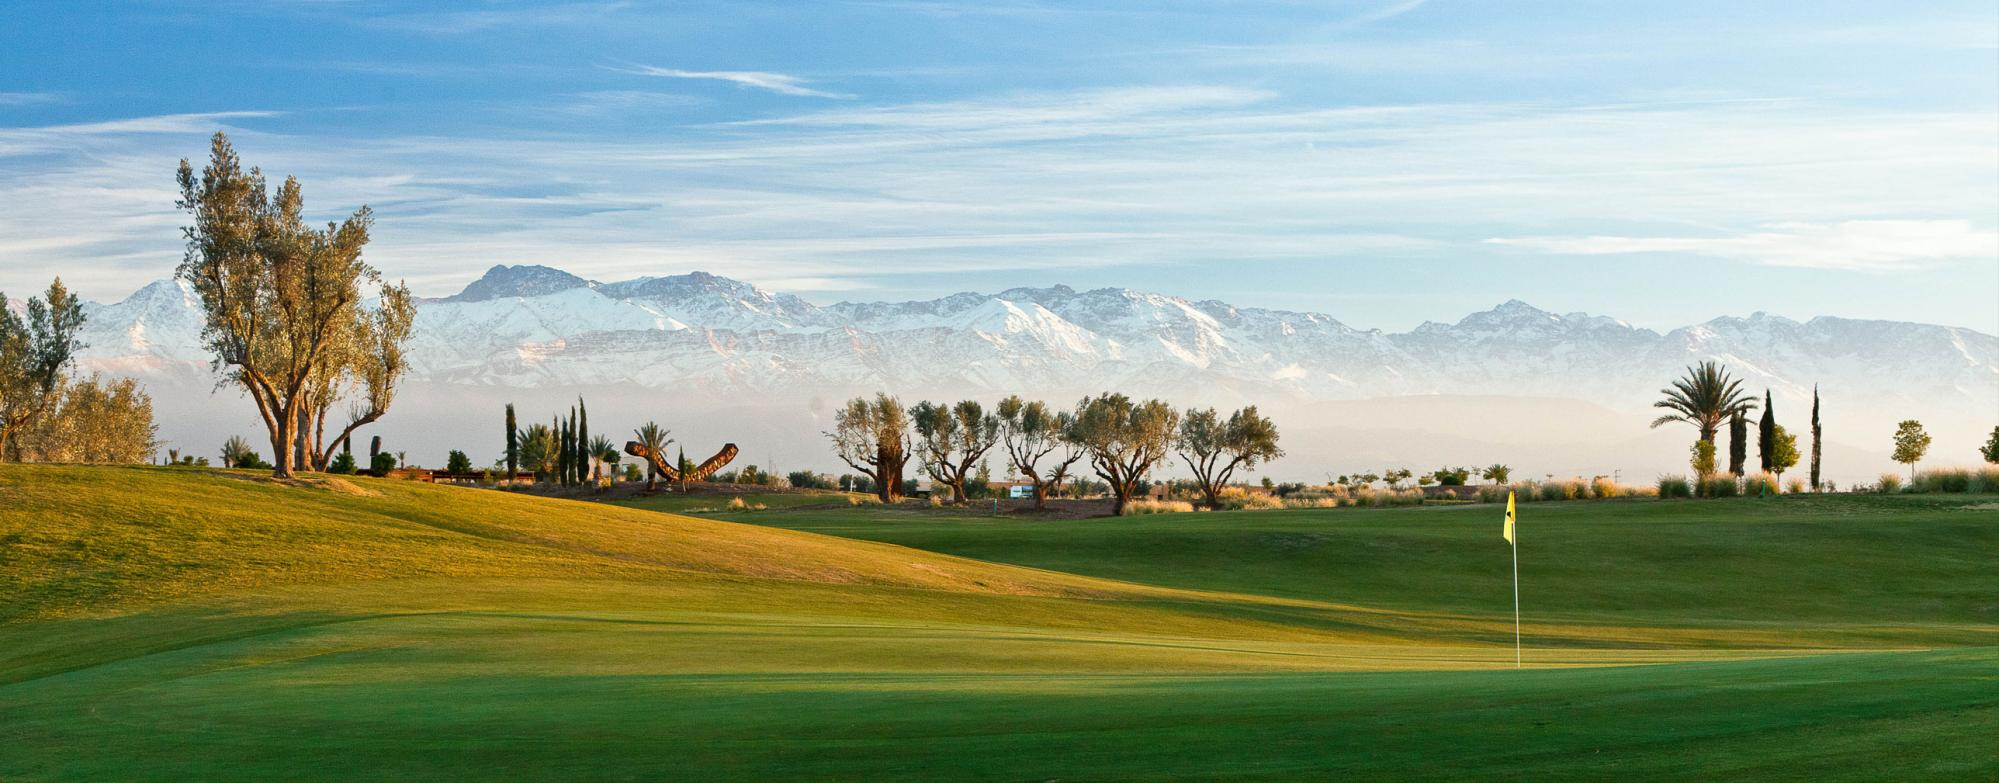 The Al Maaden Golf Course's scenic golf course within magnificent Morocco.